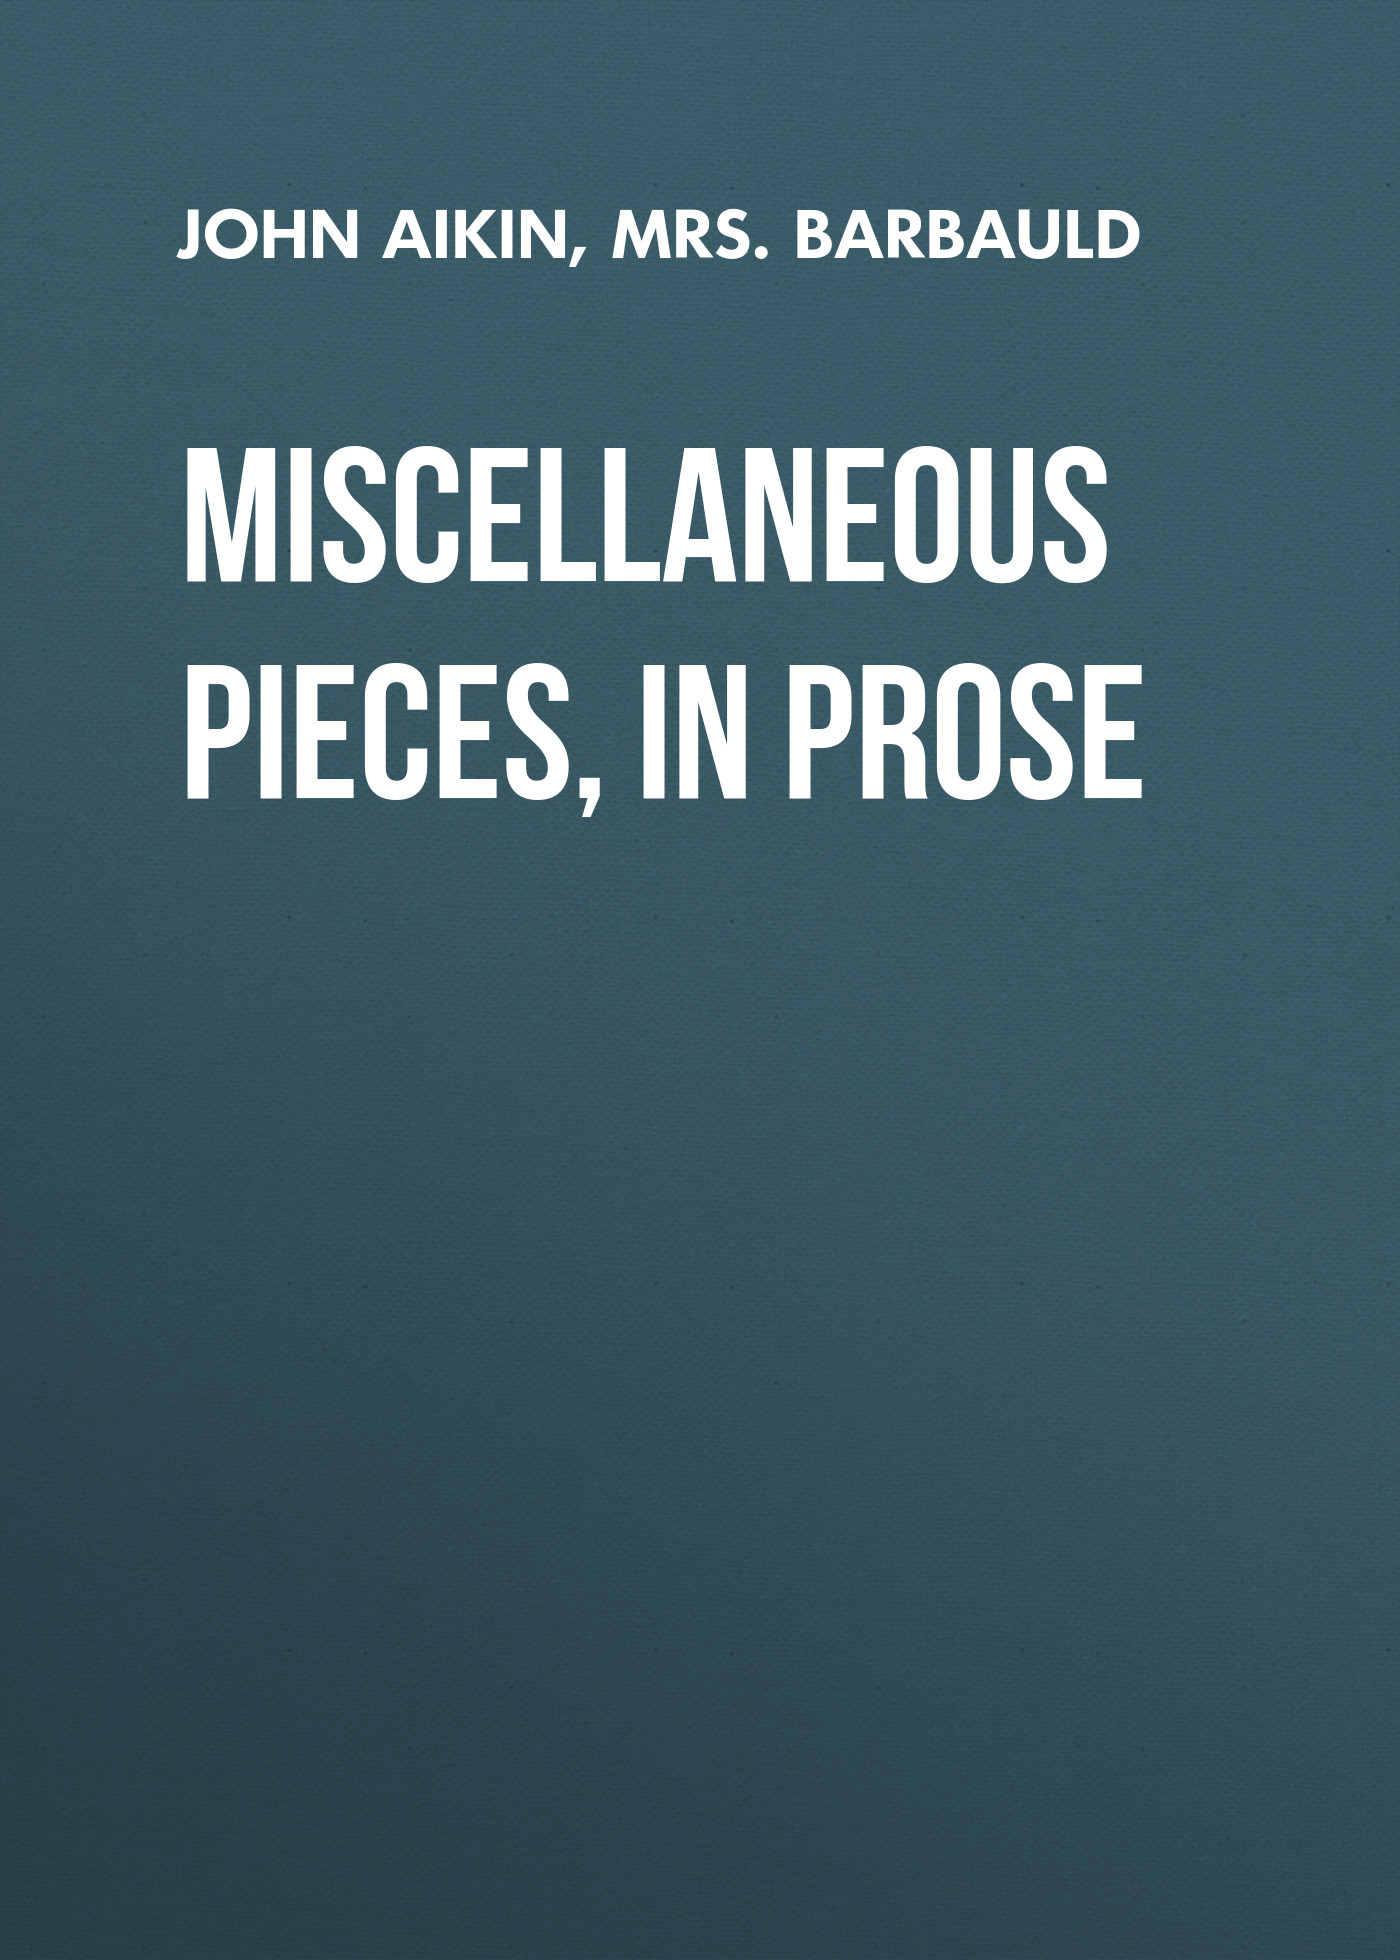 John Aikin Miscellaneous Pieces, in Prose